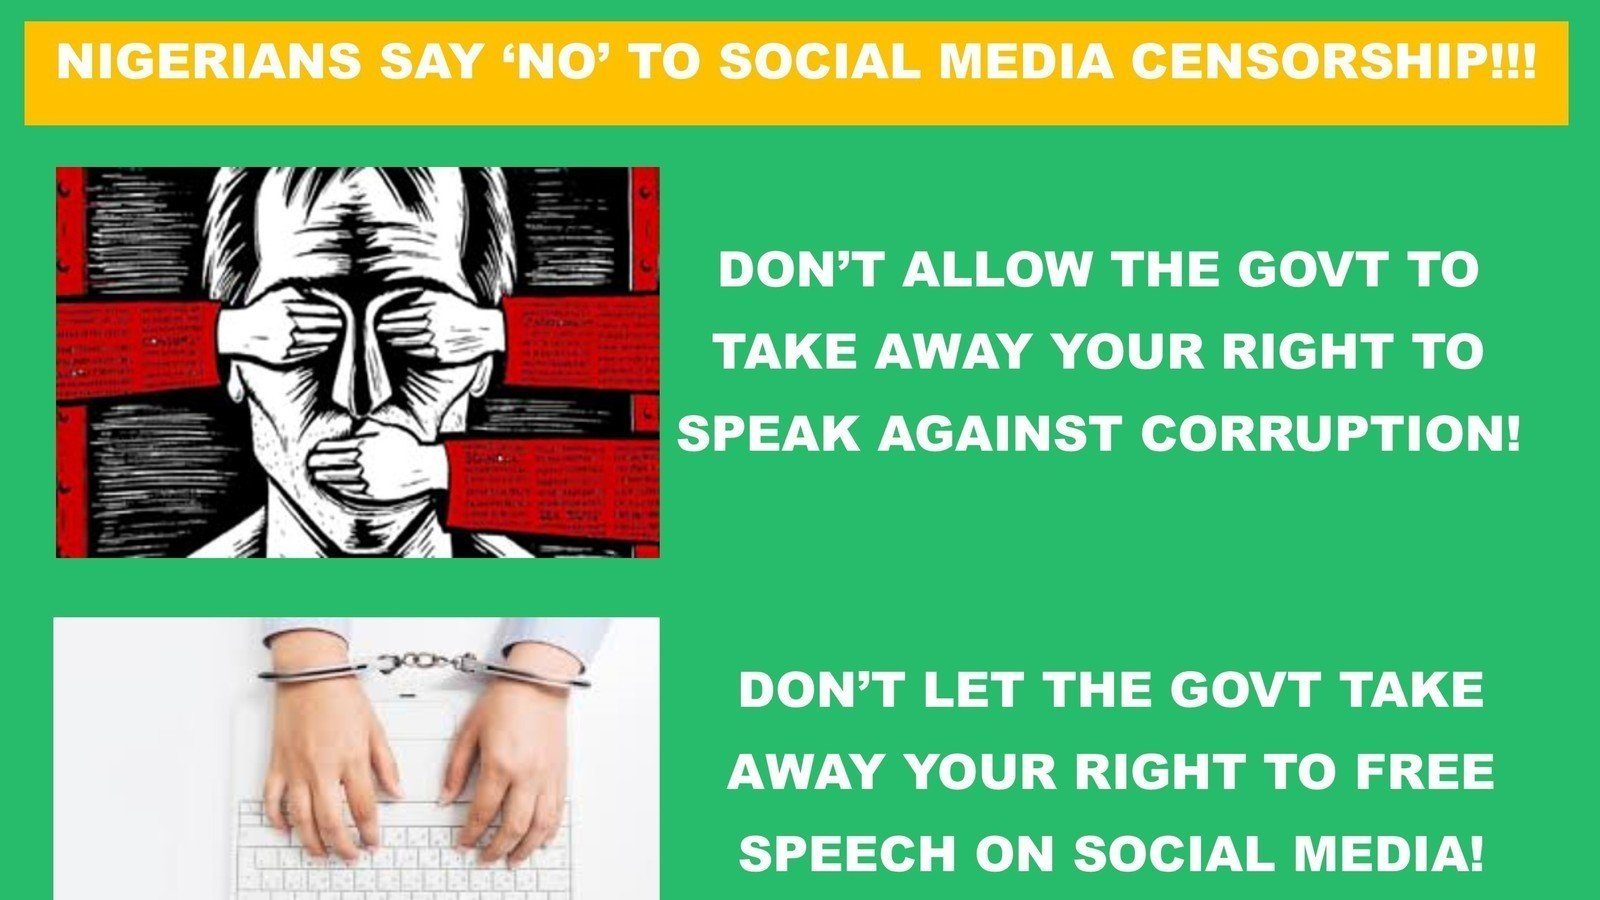 censorship in media Unlike censorship decisions by government agencies, the process in the private world of social media is secret it is probably true that facebook has a first amendment right to censor whatever it wants in order to maintain the kind of social space it wants.